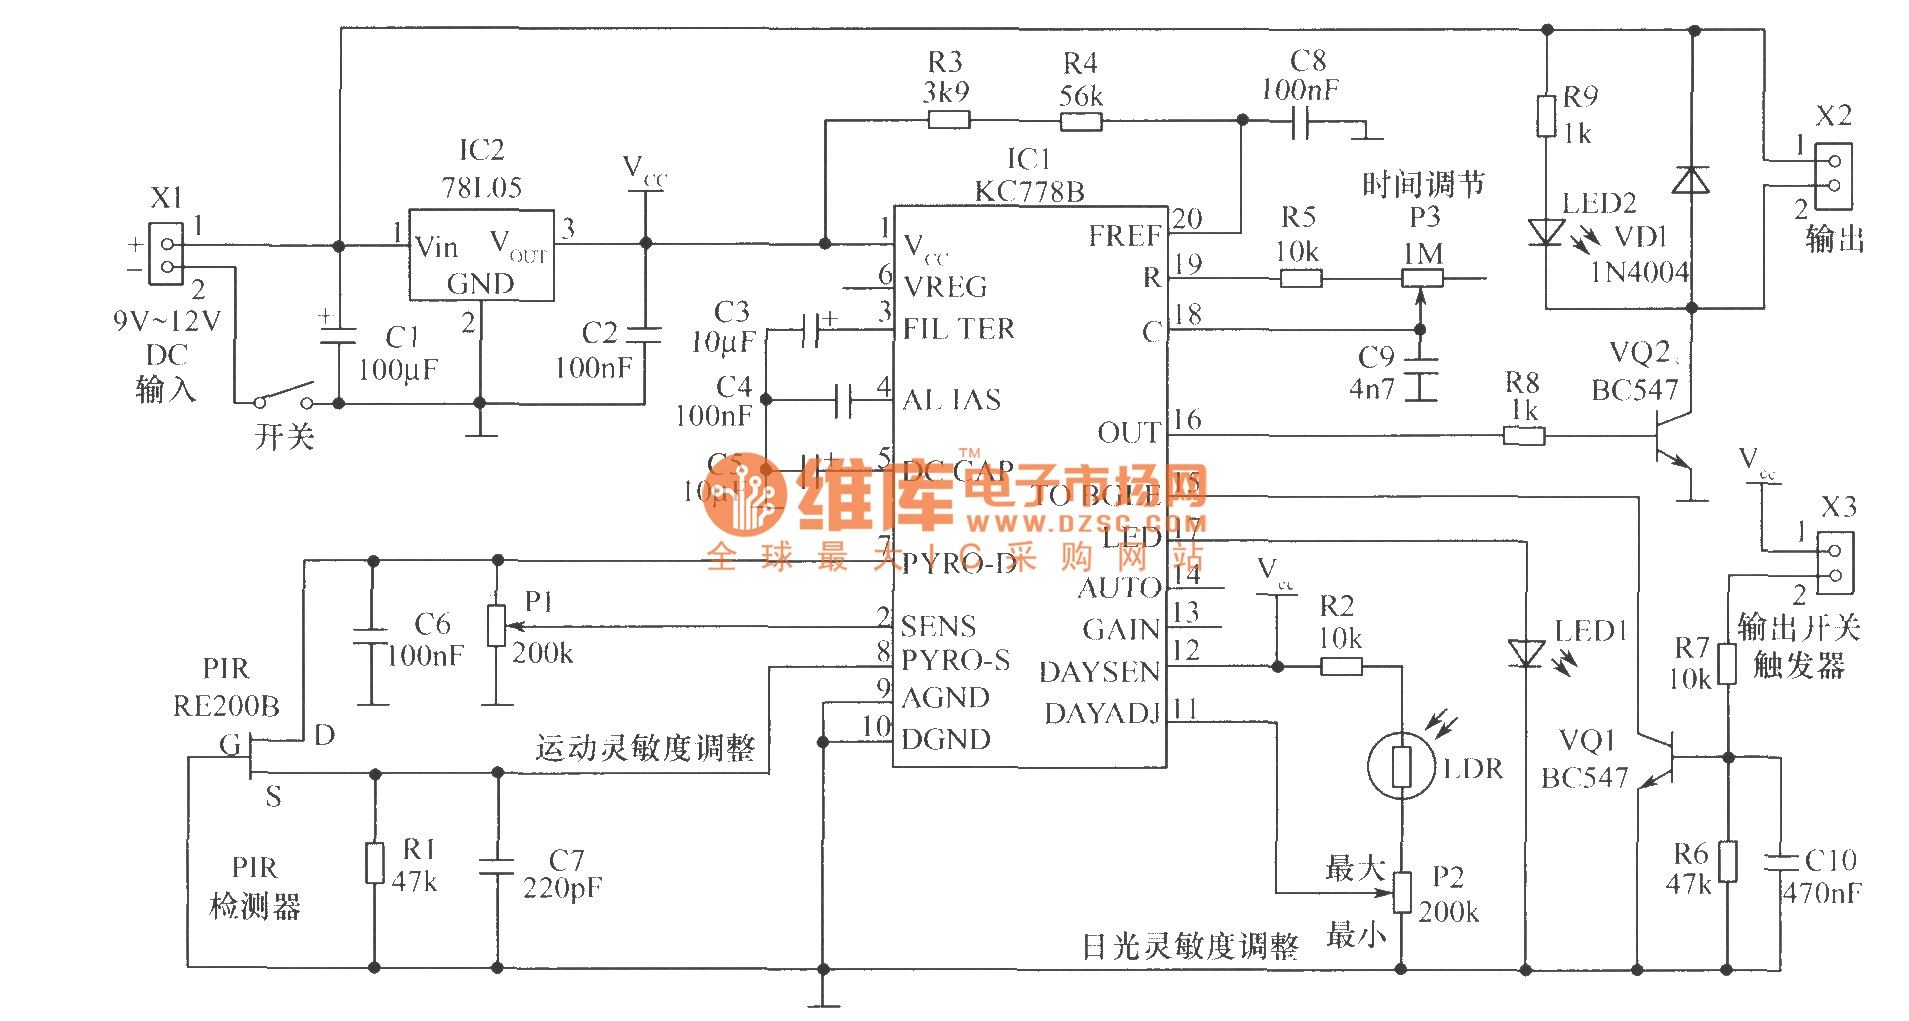 Led Motion Sensor Diagram Download Wiring Diagrams Detection Flood Light Gt Circuits Object Detector Circuit L51633 Outdoor Lights